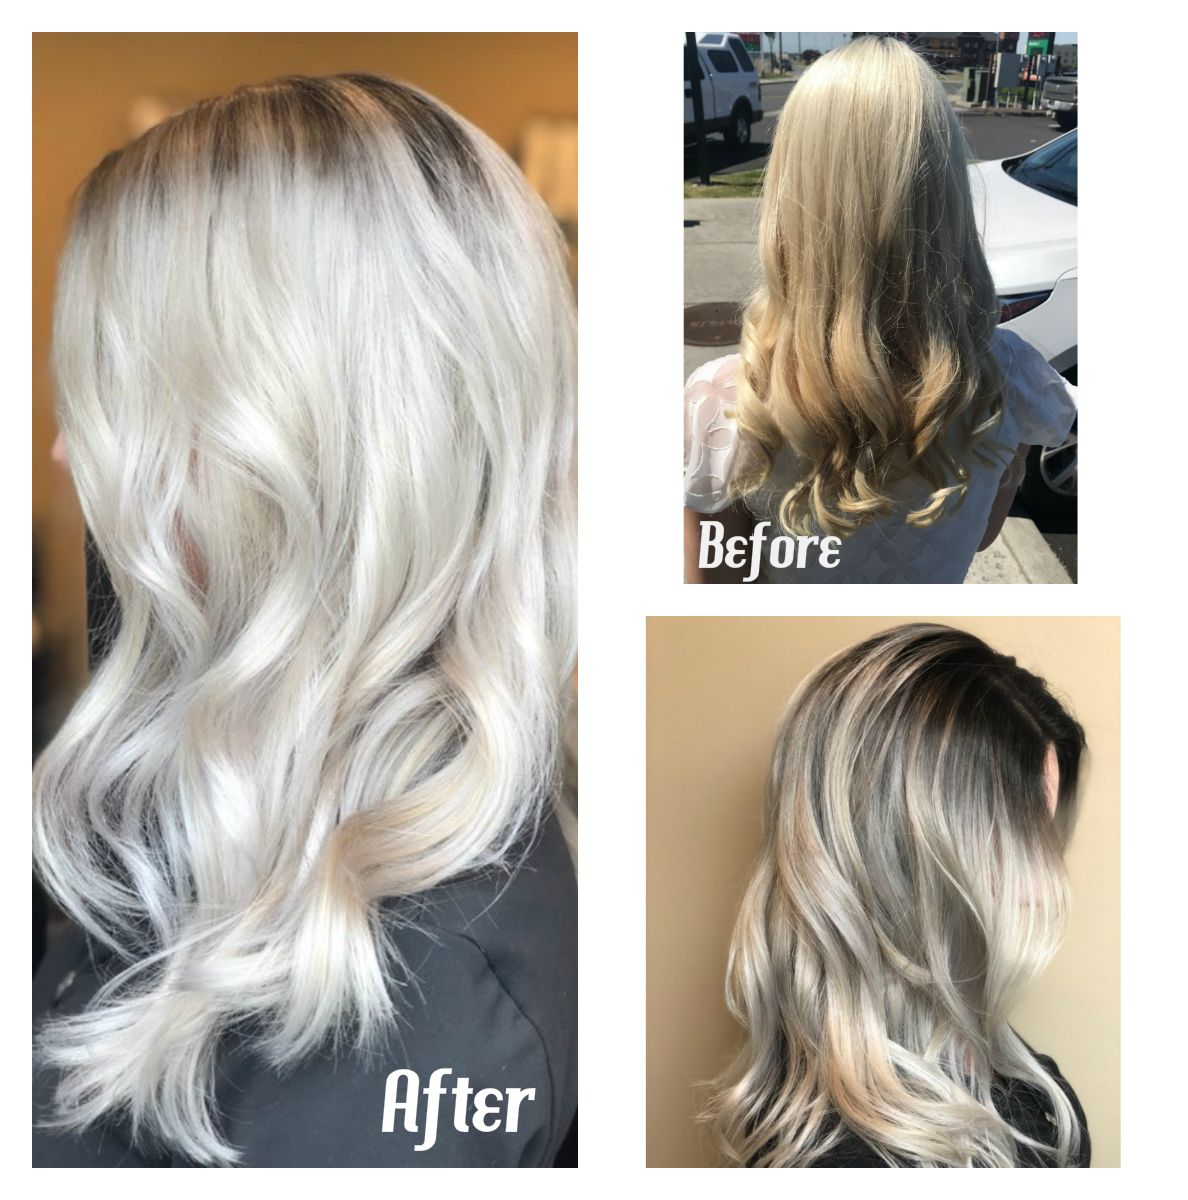 Hair By Elizabeth From Brassy And Yellow To Icy Platinum Blonde